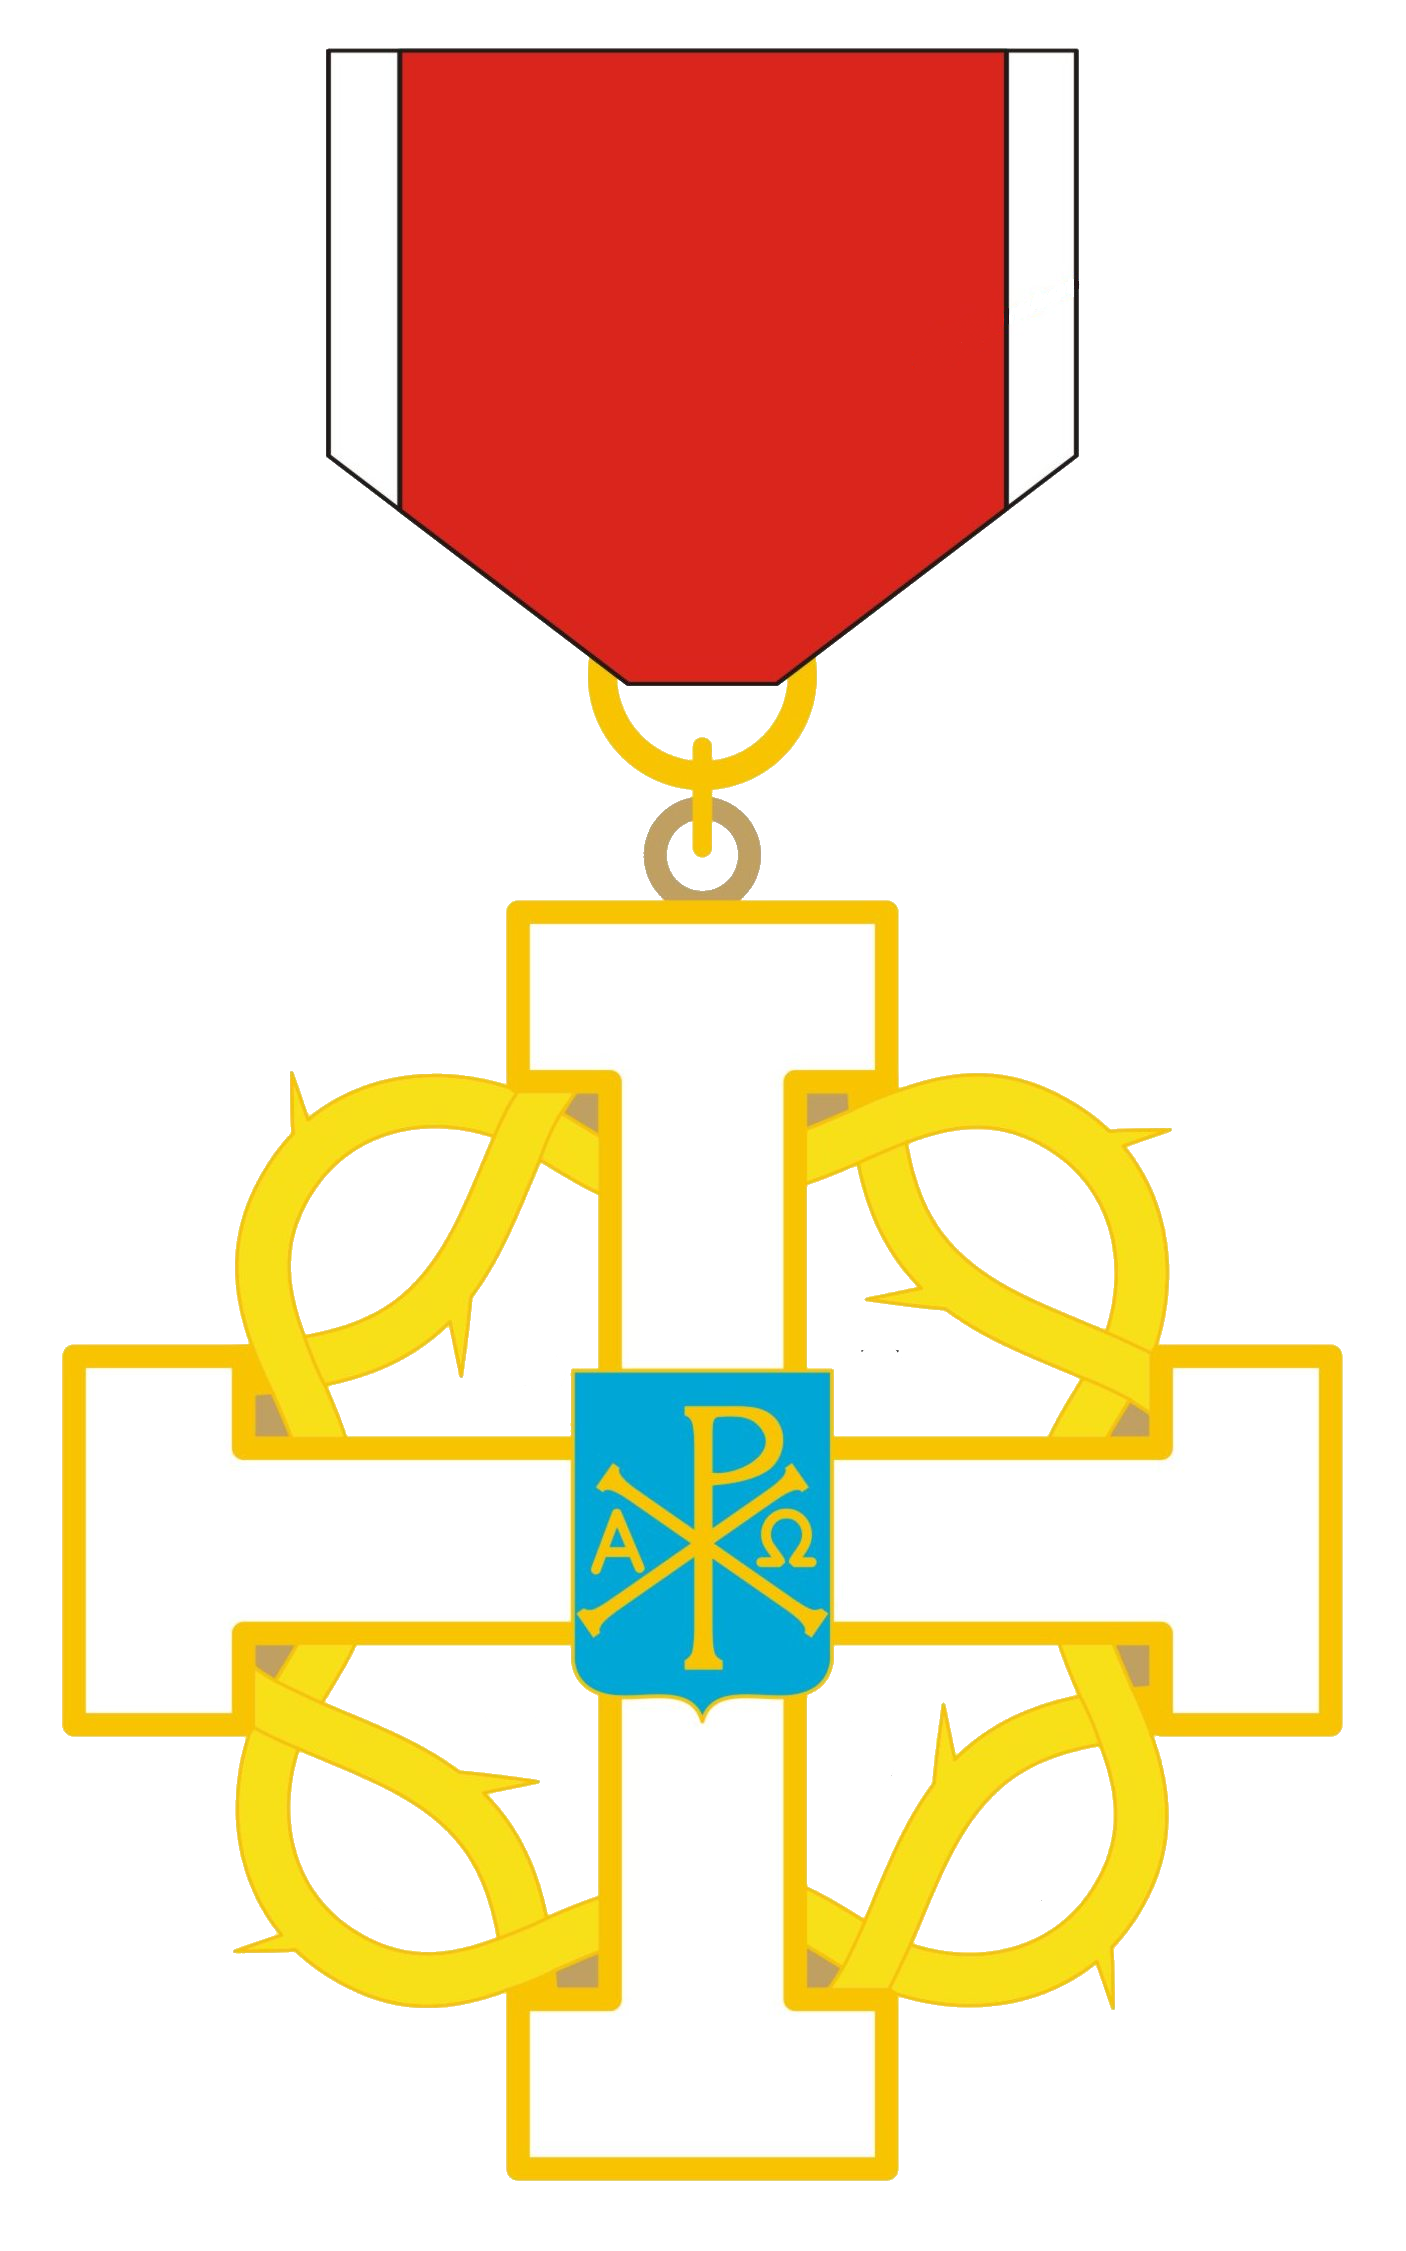 Clipart of a cross with a crown of thorns wrapped around it graphic library library Insignia   The Abbey-Principality of San Luigi graphic library library